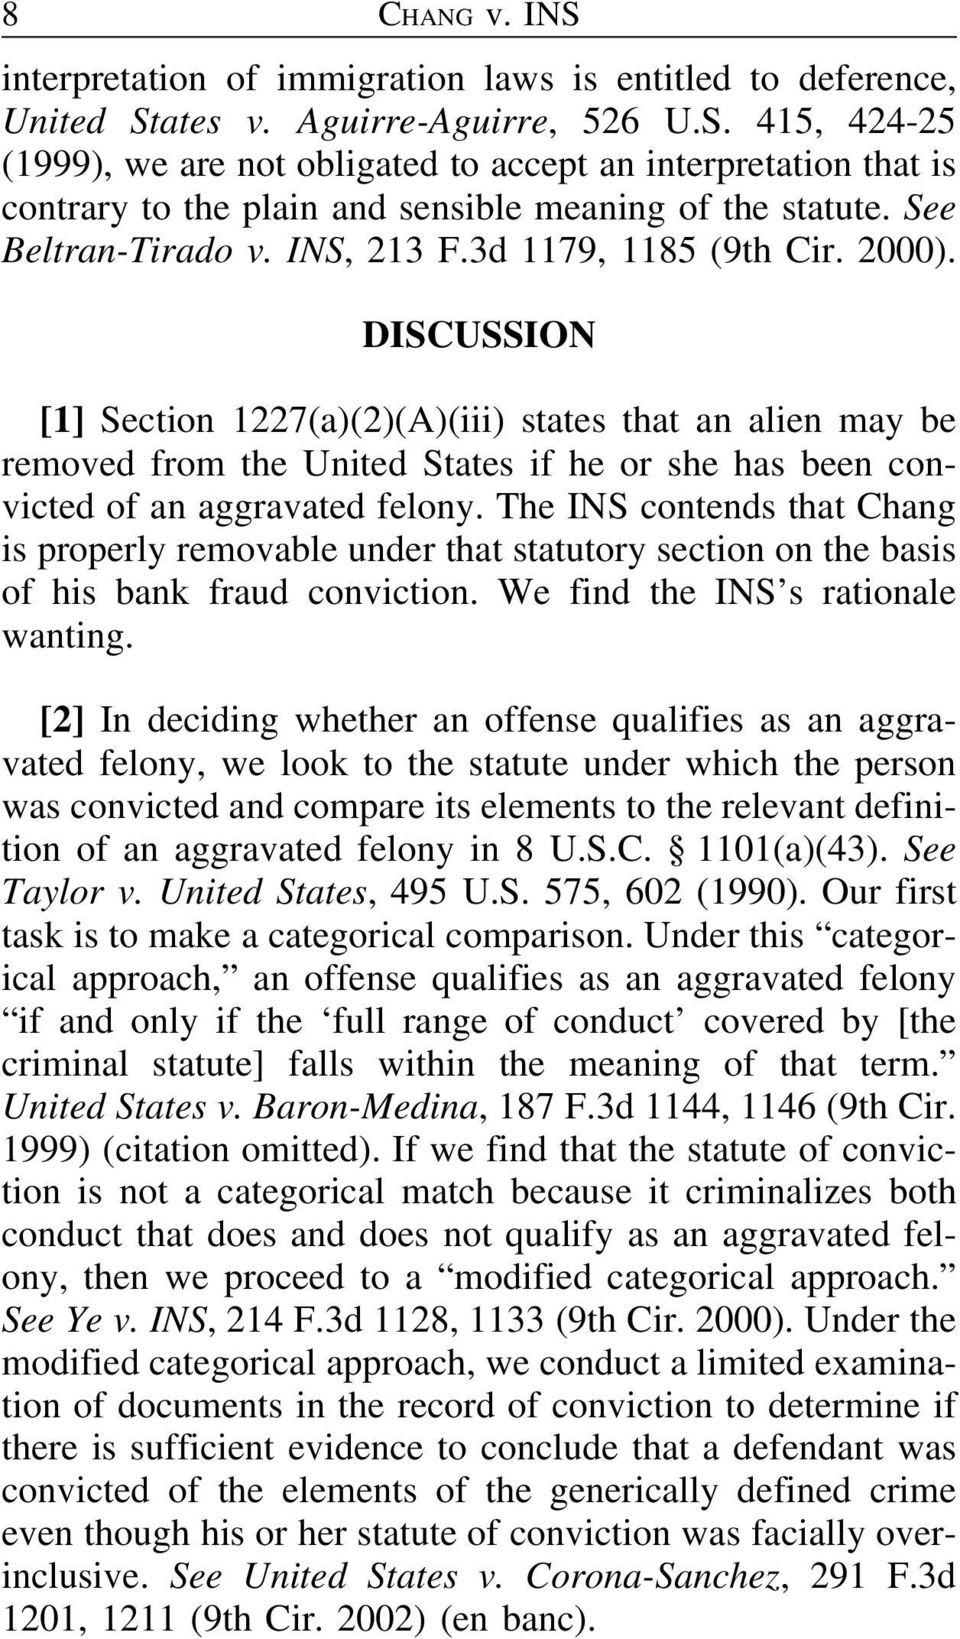 DISCUSSION [1] Section 1227(a)(2)(A)(iii) states that an alien may be removed from the United States if he or she has been convicted of an aggravated felony.